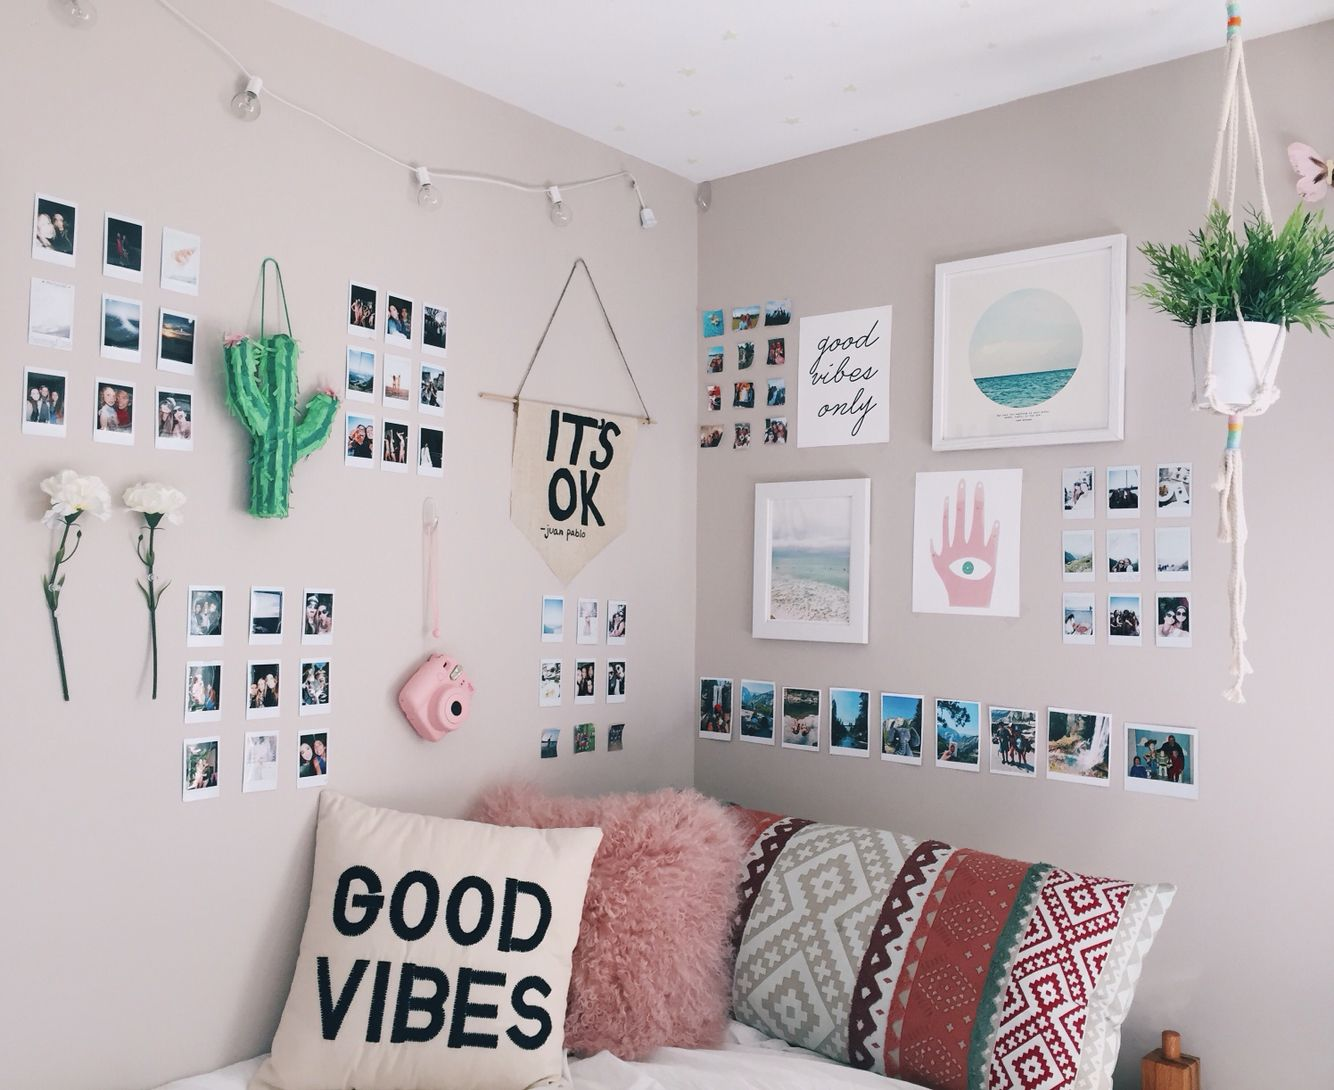 My Room Room Decor Room Inspiration Girl Room